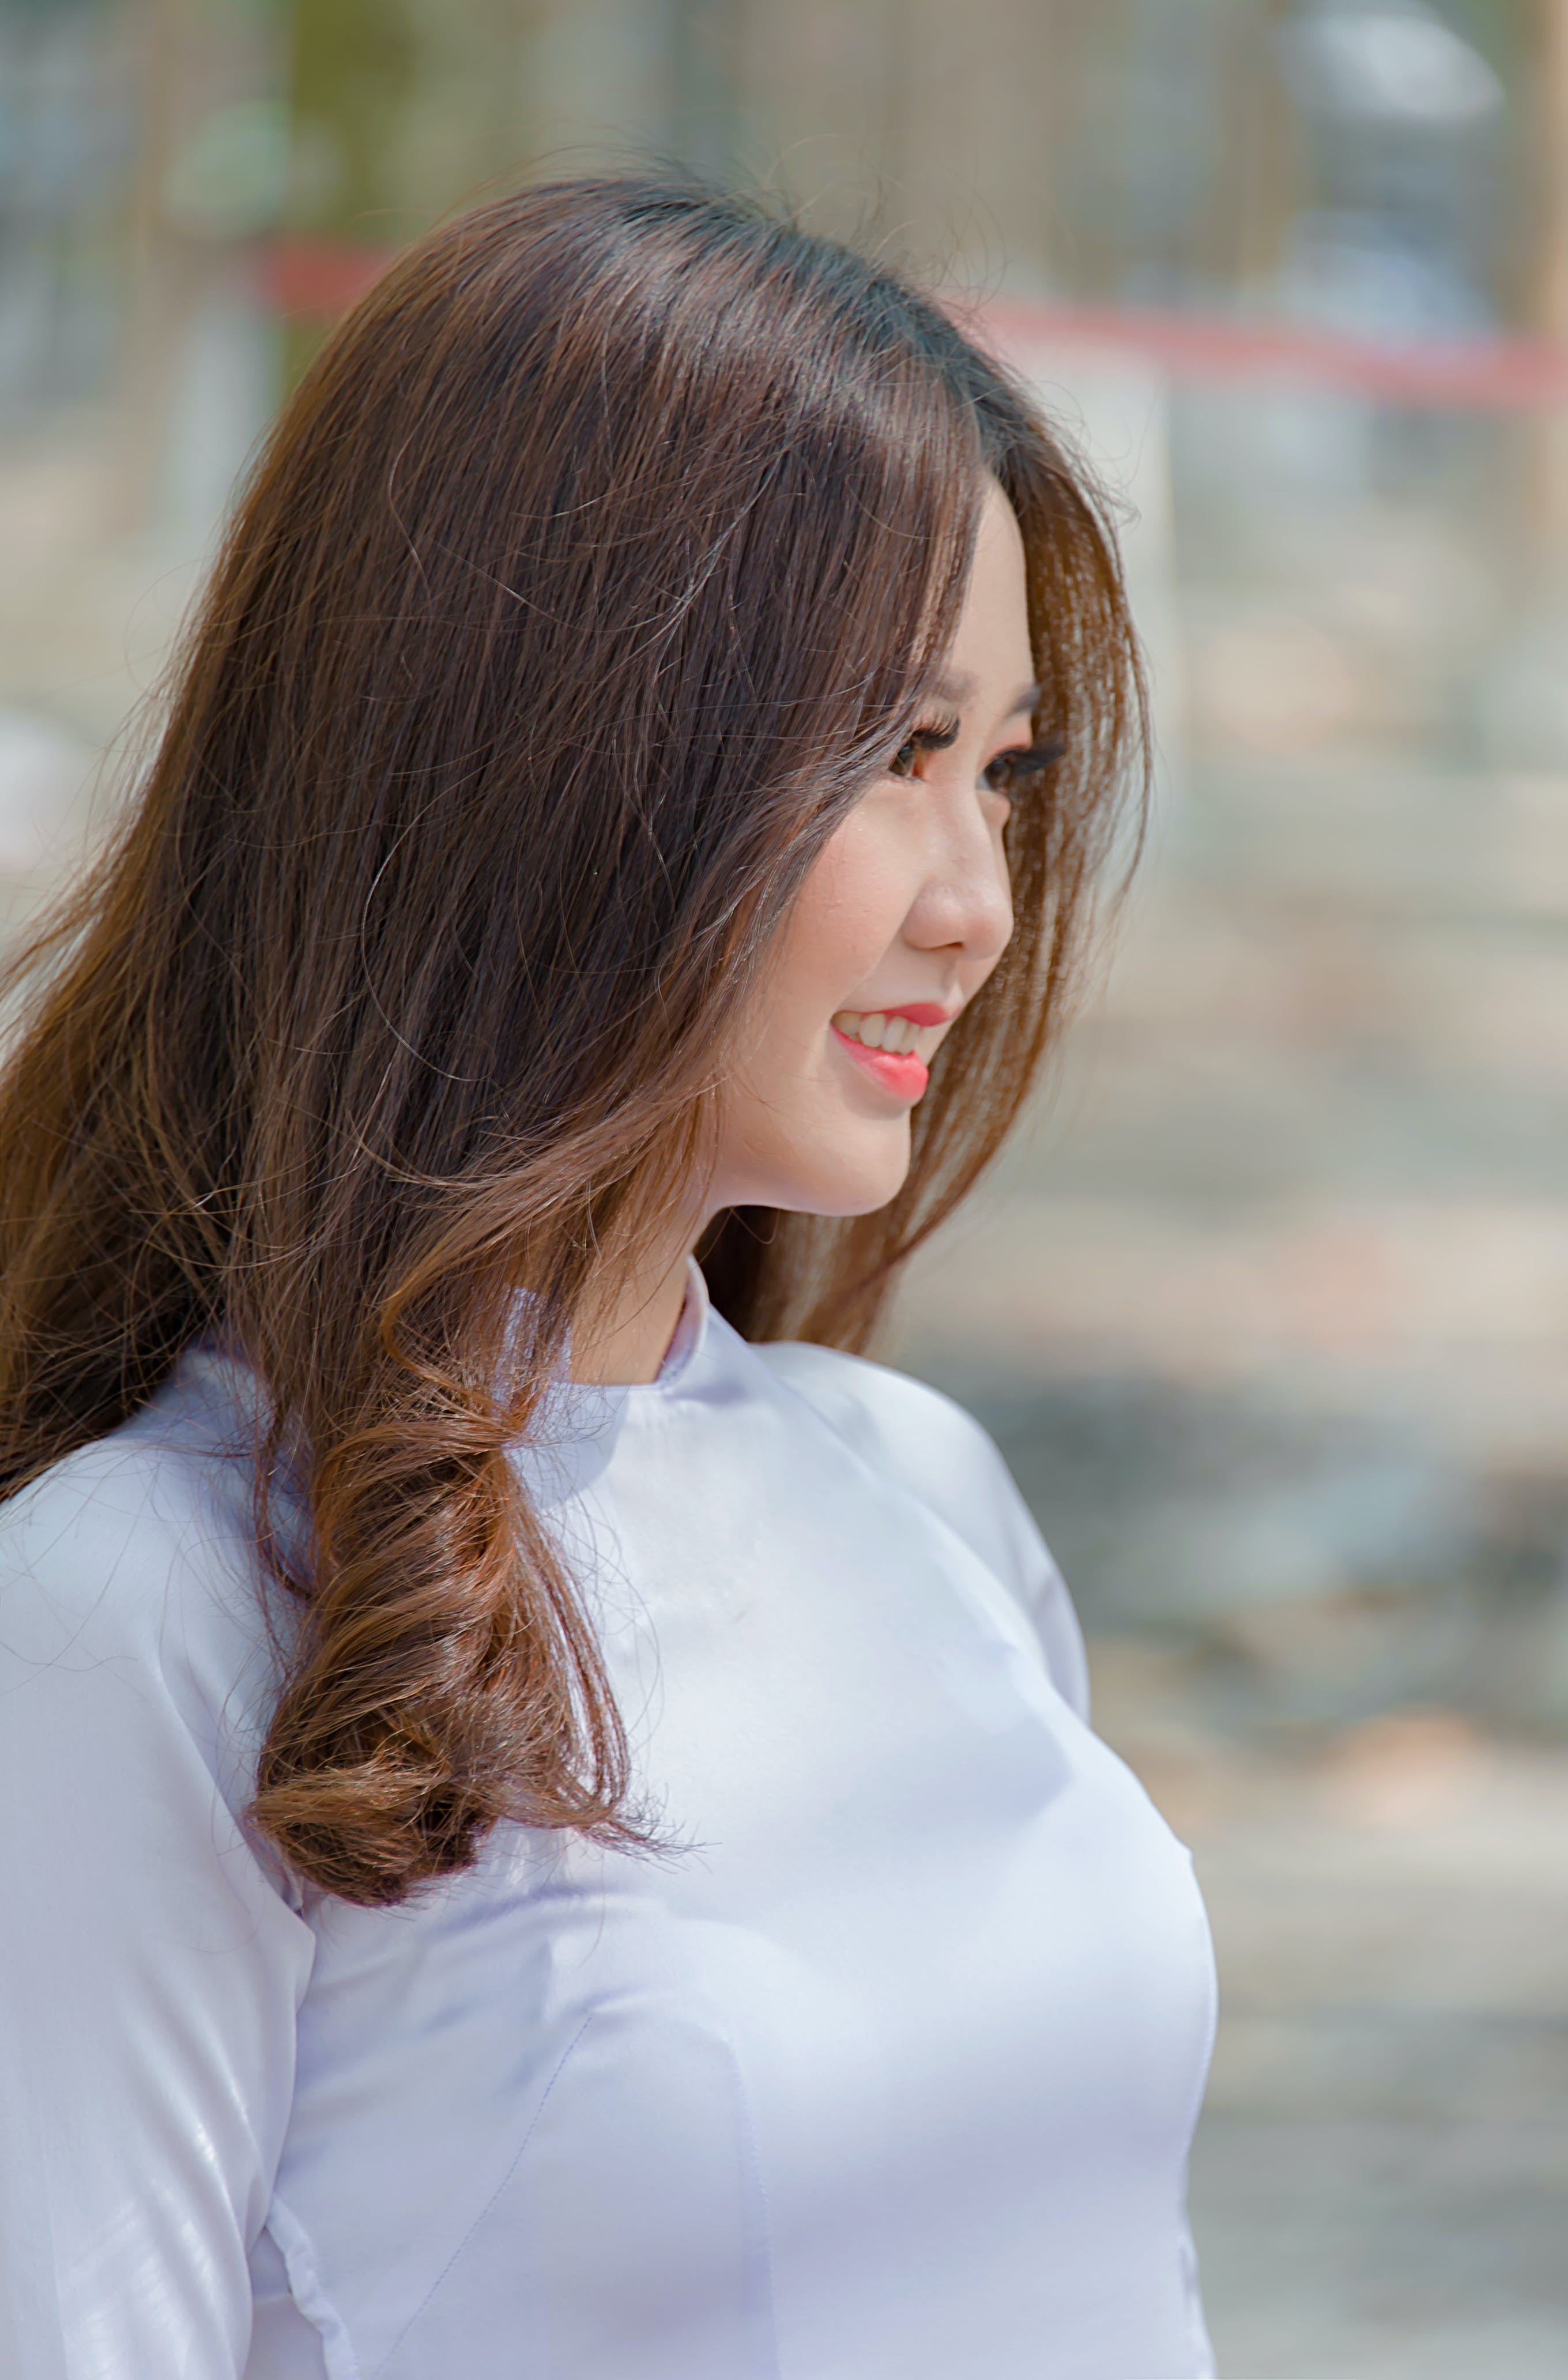 Side View Photo of Woman Wearing White top